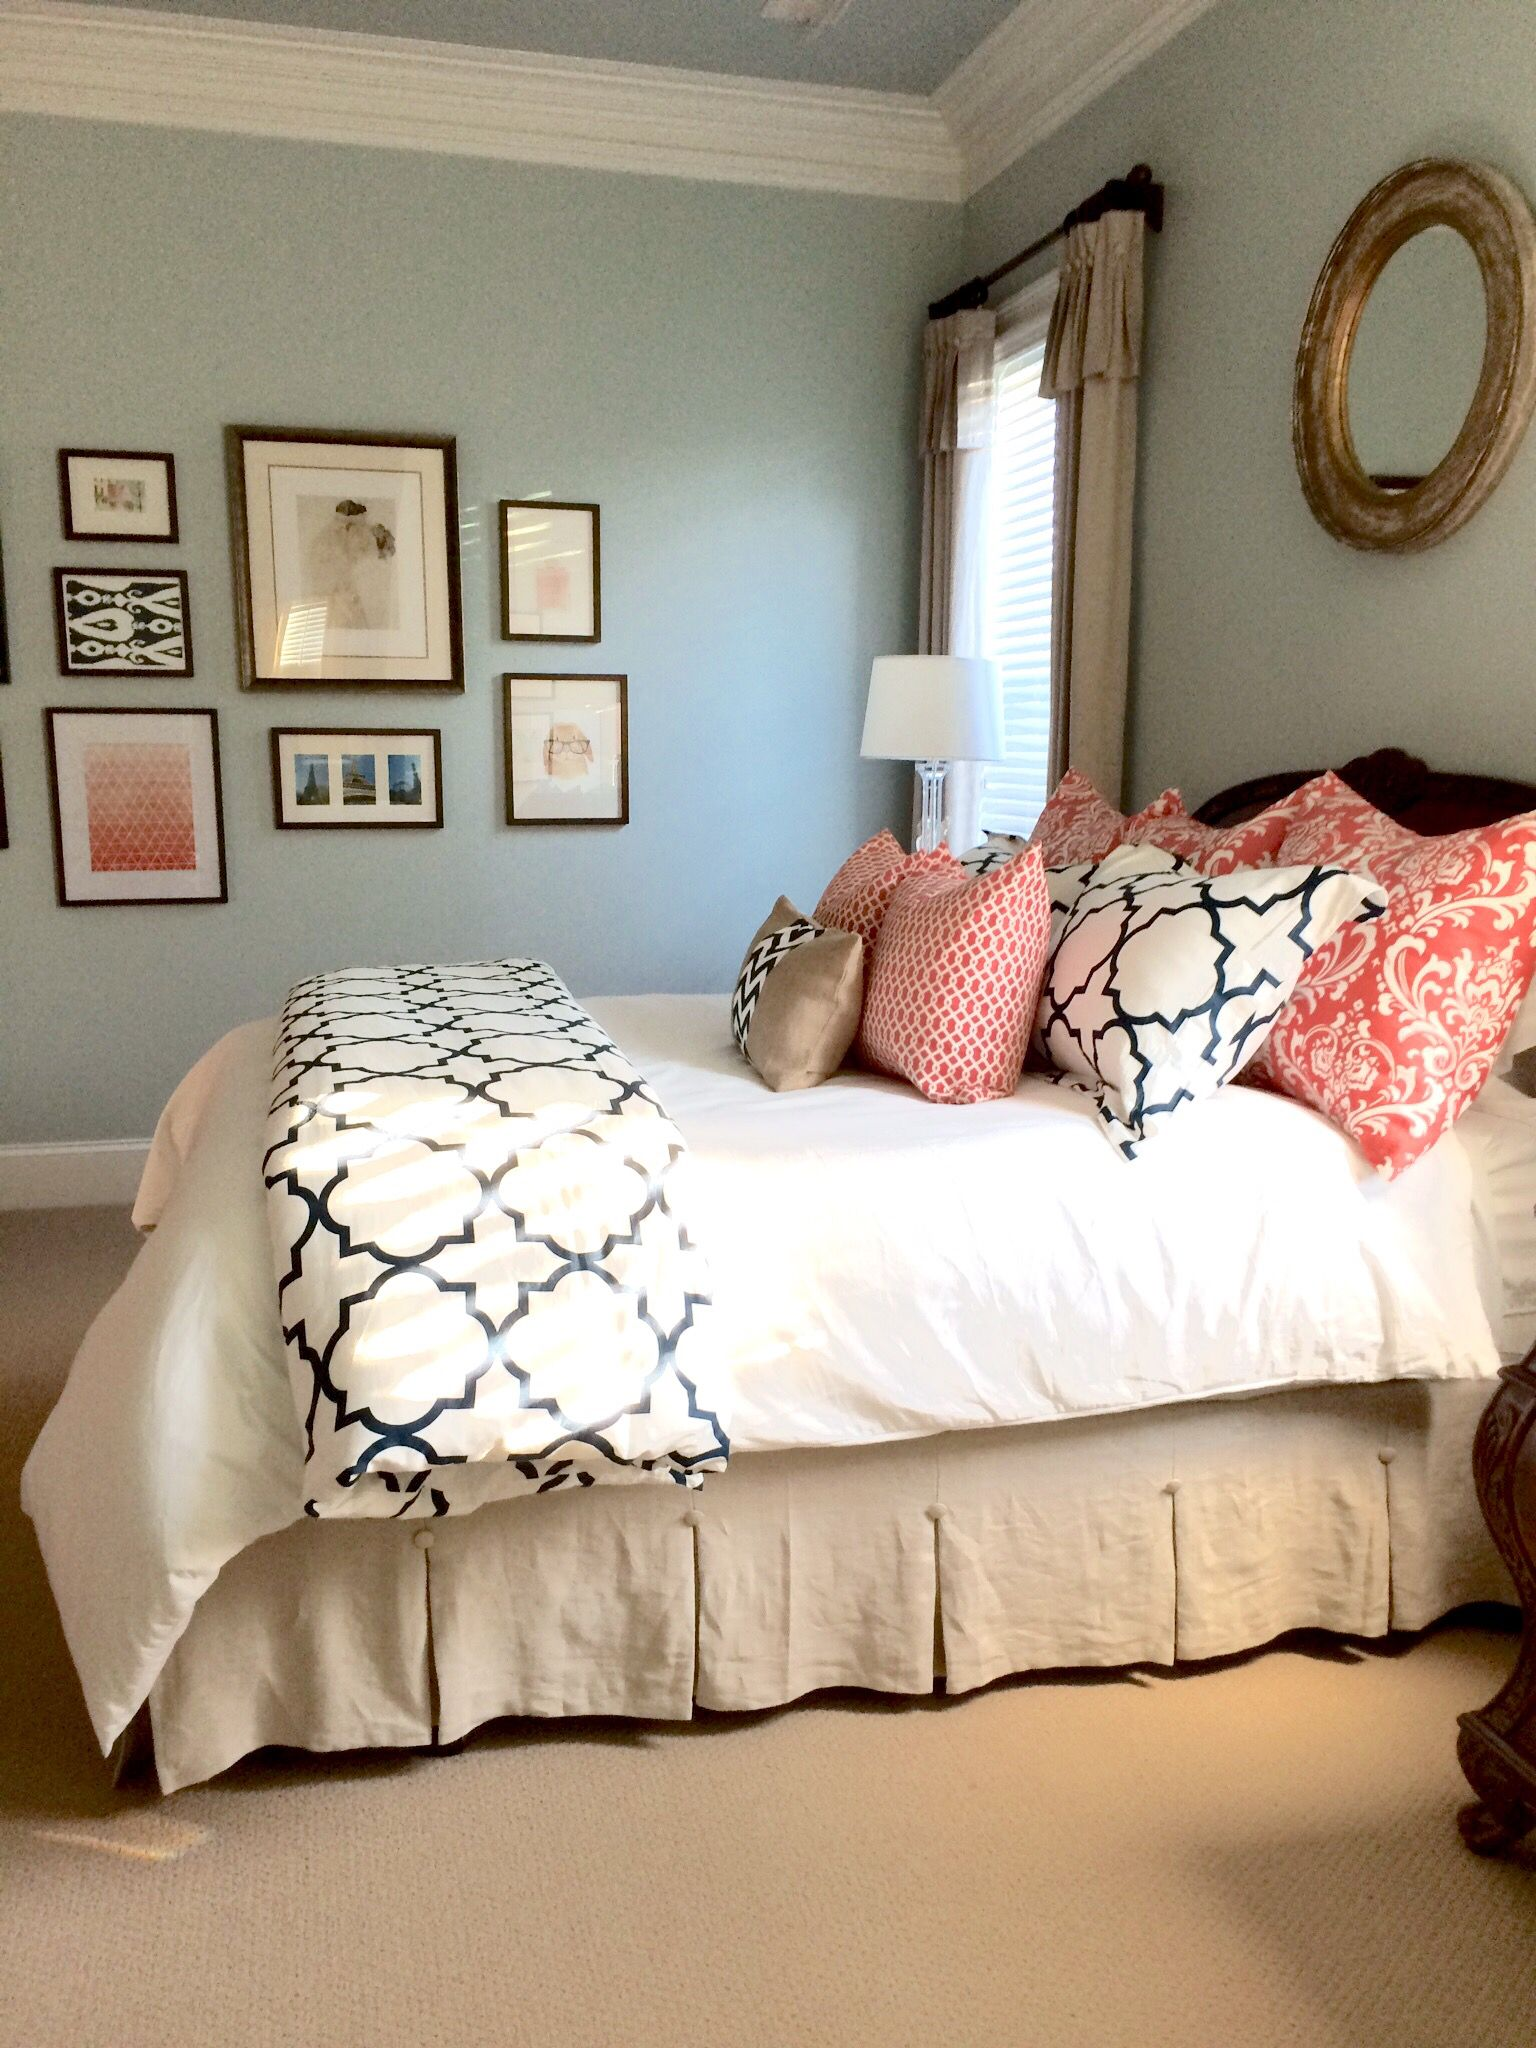 Bedroom And More completed linen, navy, and coral bedroom to see more rooms in my